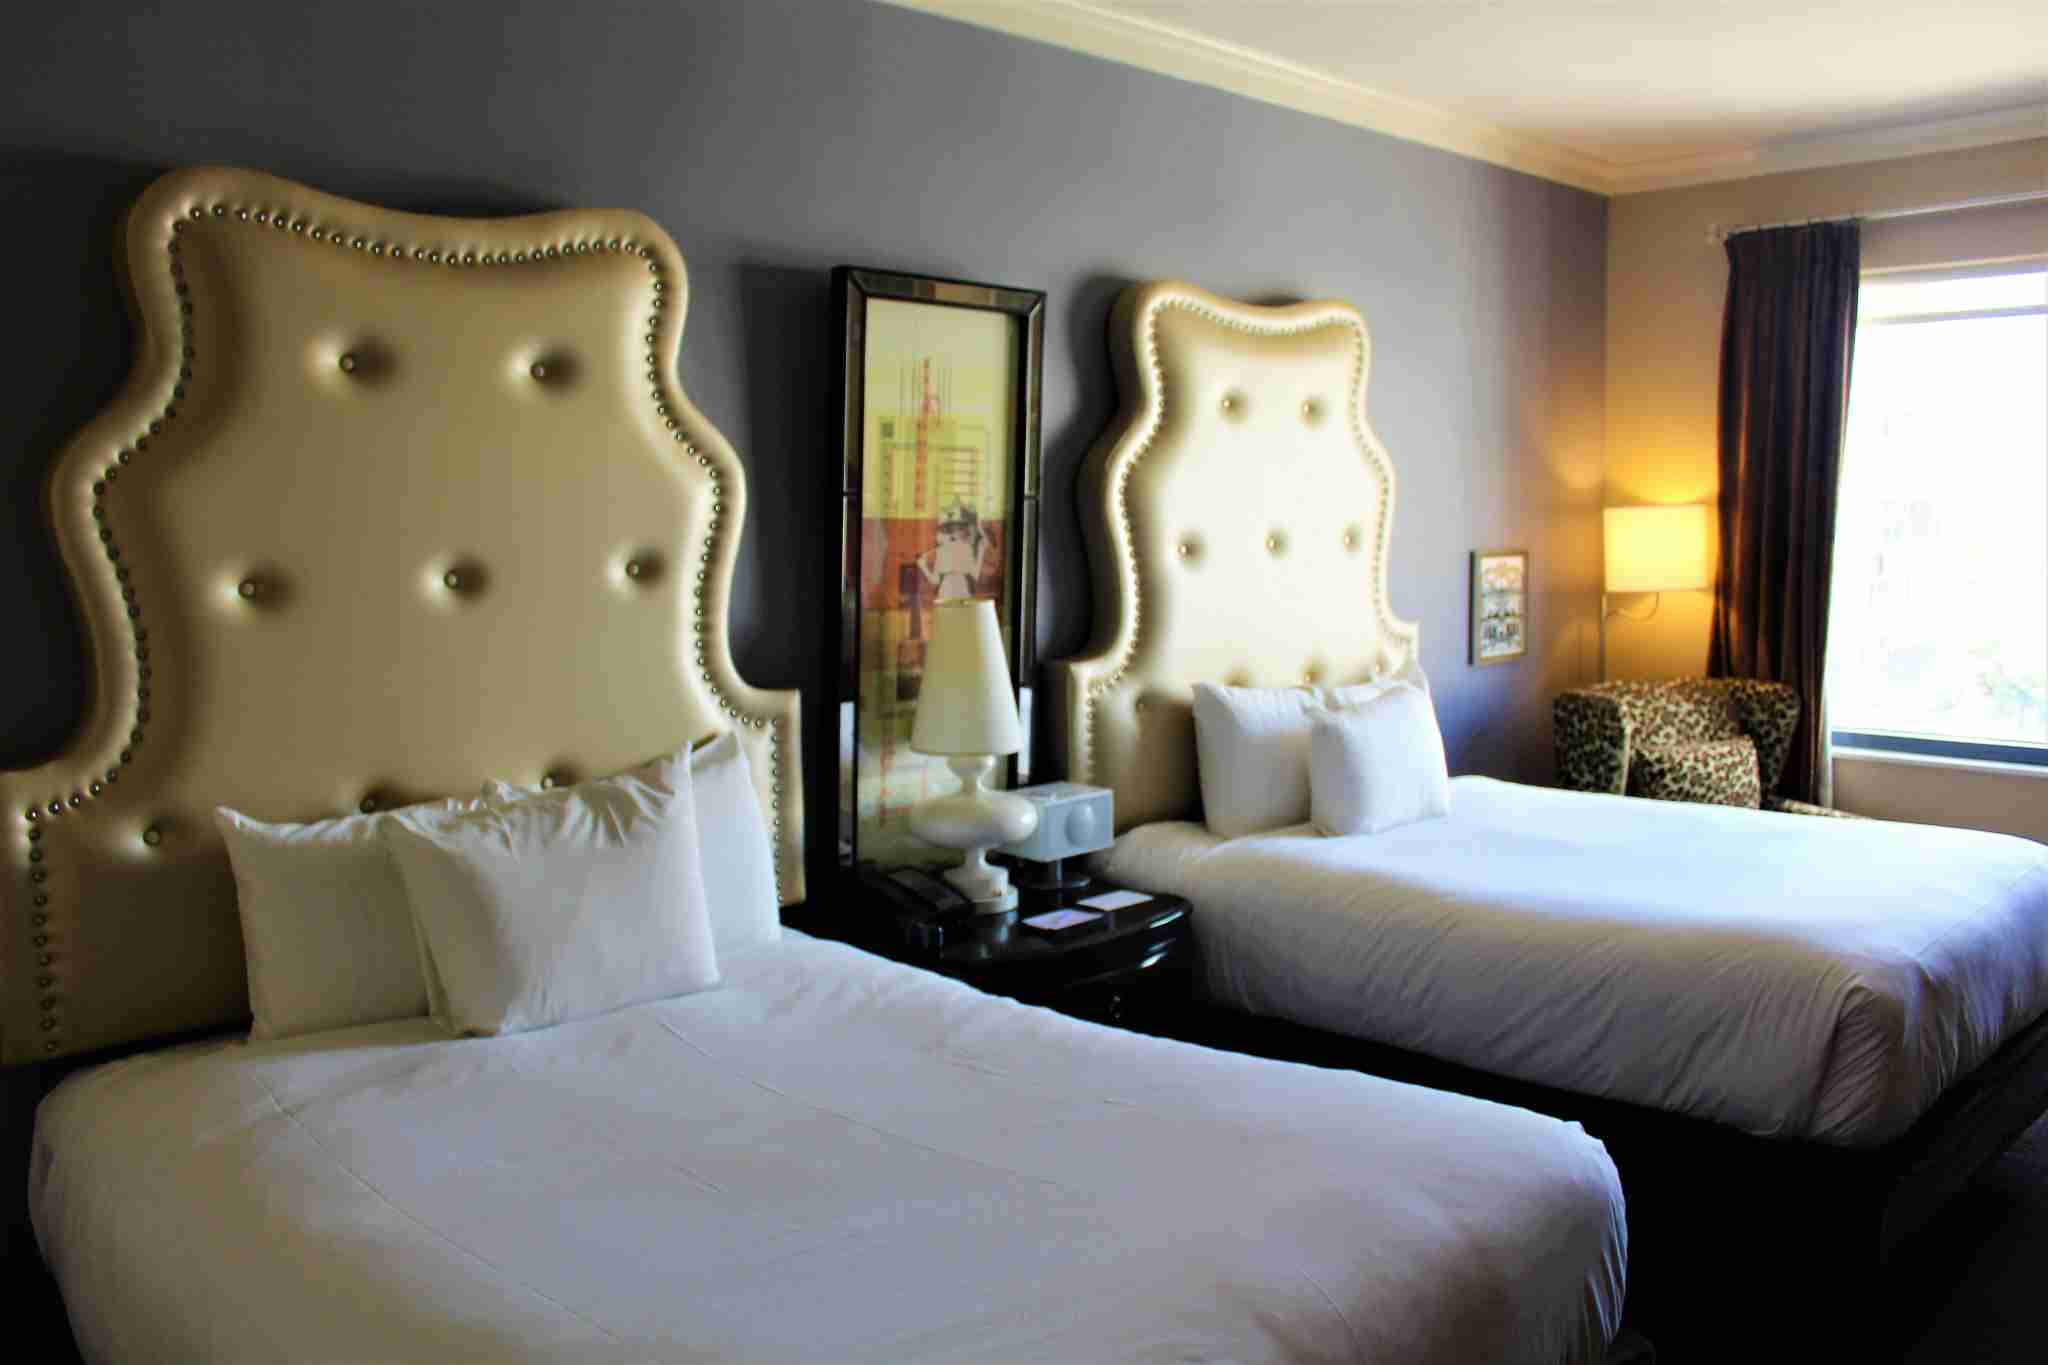 Two queen beds with chic headboards added to the room